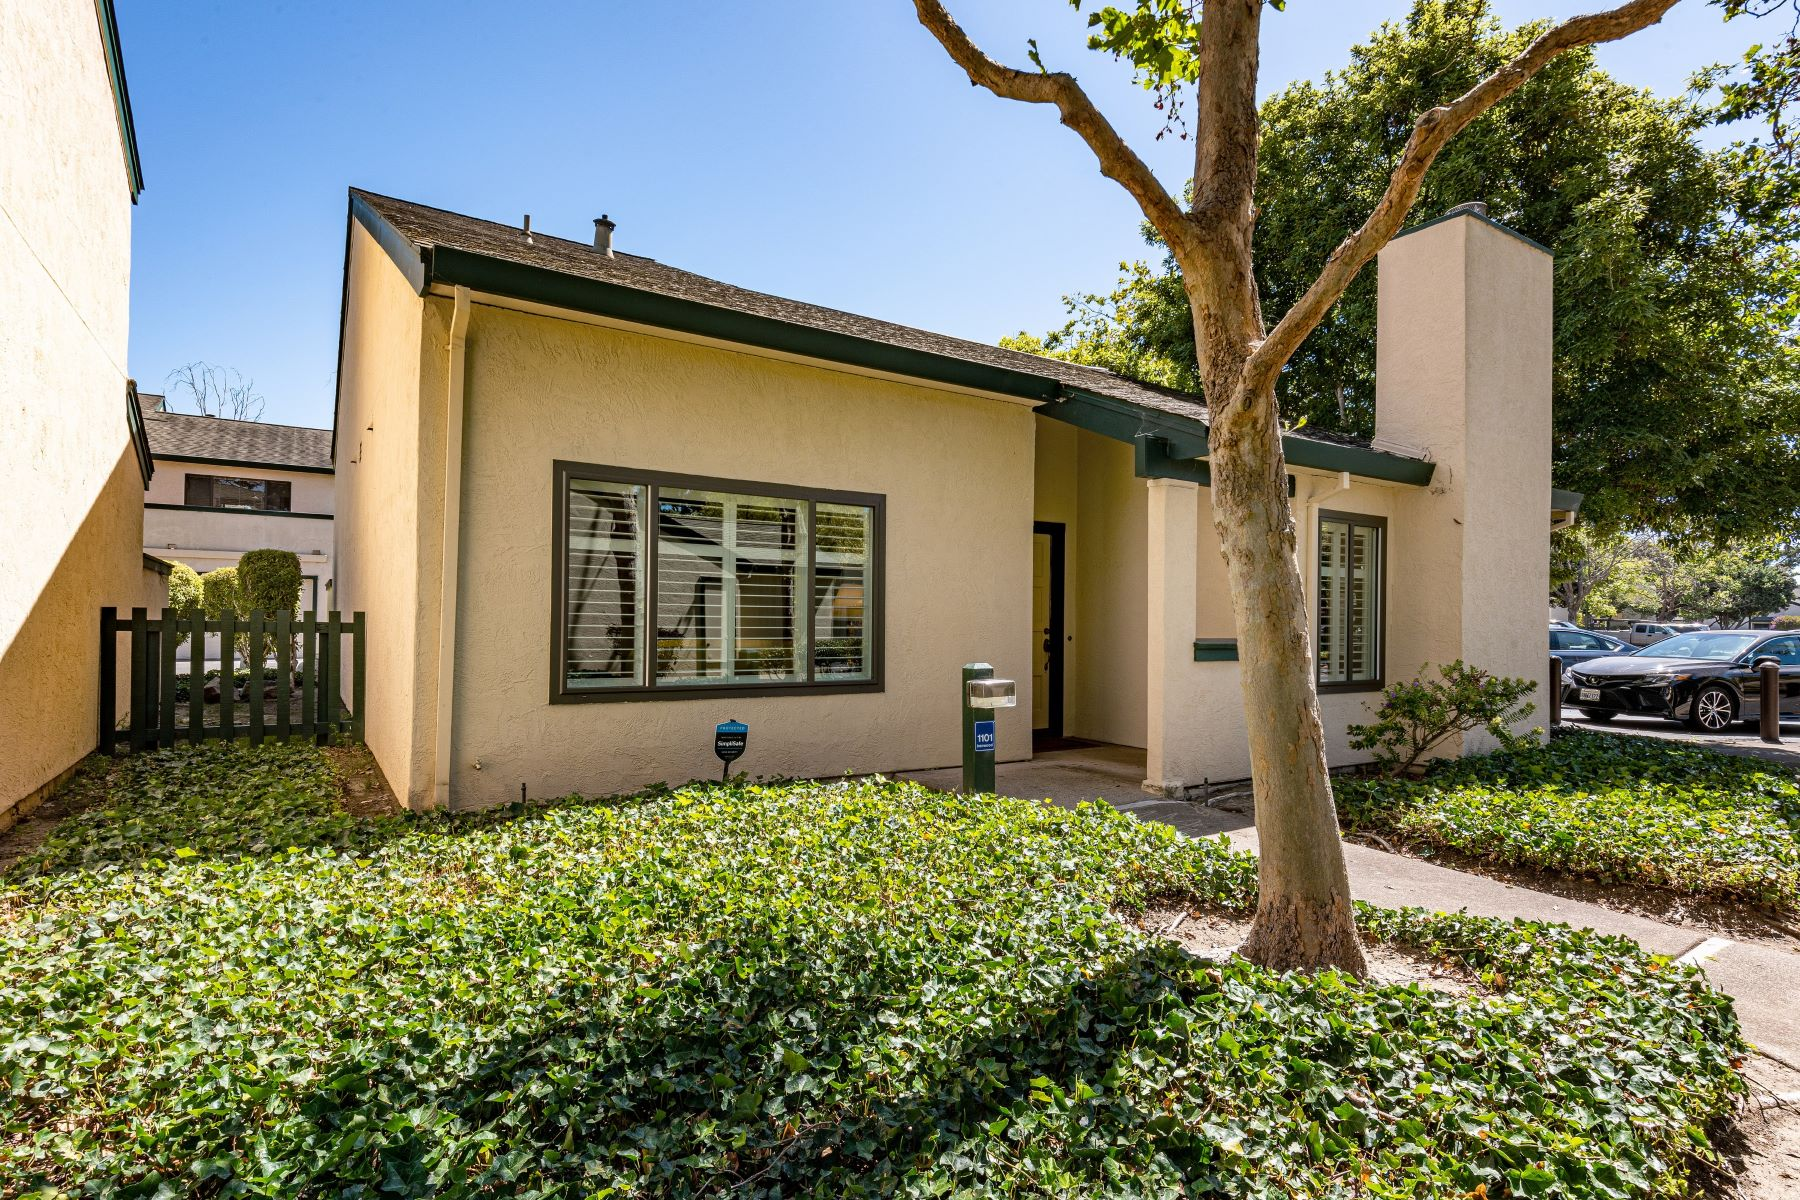 townhouses for Sale at Detached Harbor Bay Townhome 1101 Ironside Road Alameda, California 94502 United States